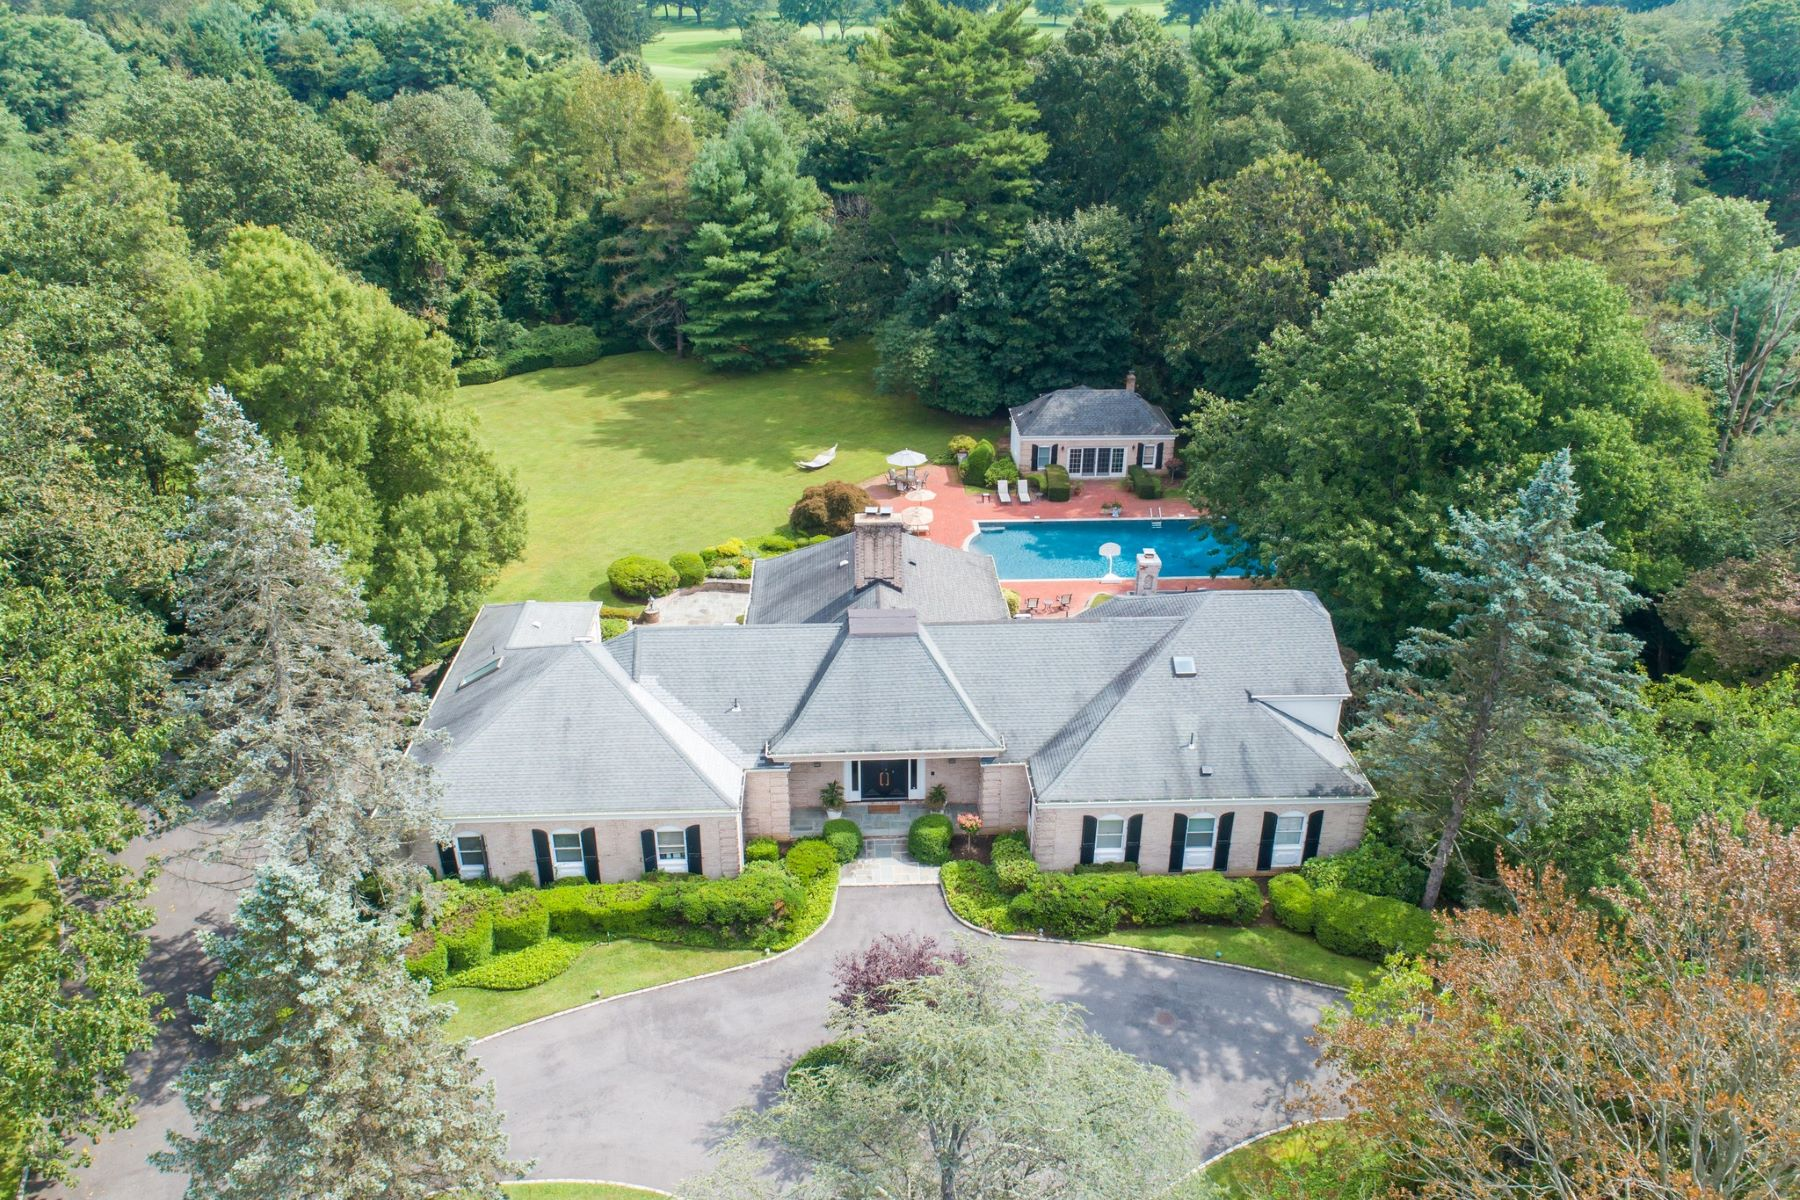 Single Family Homes for Sale at Old Westbury 31 Applegreen Drive Old Westbury, New York 11568 United States